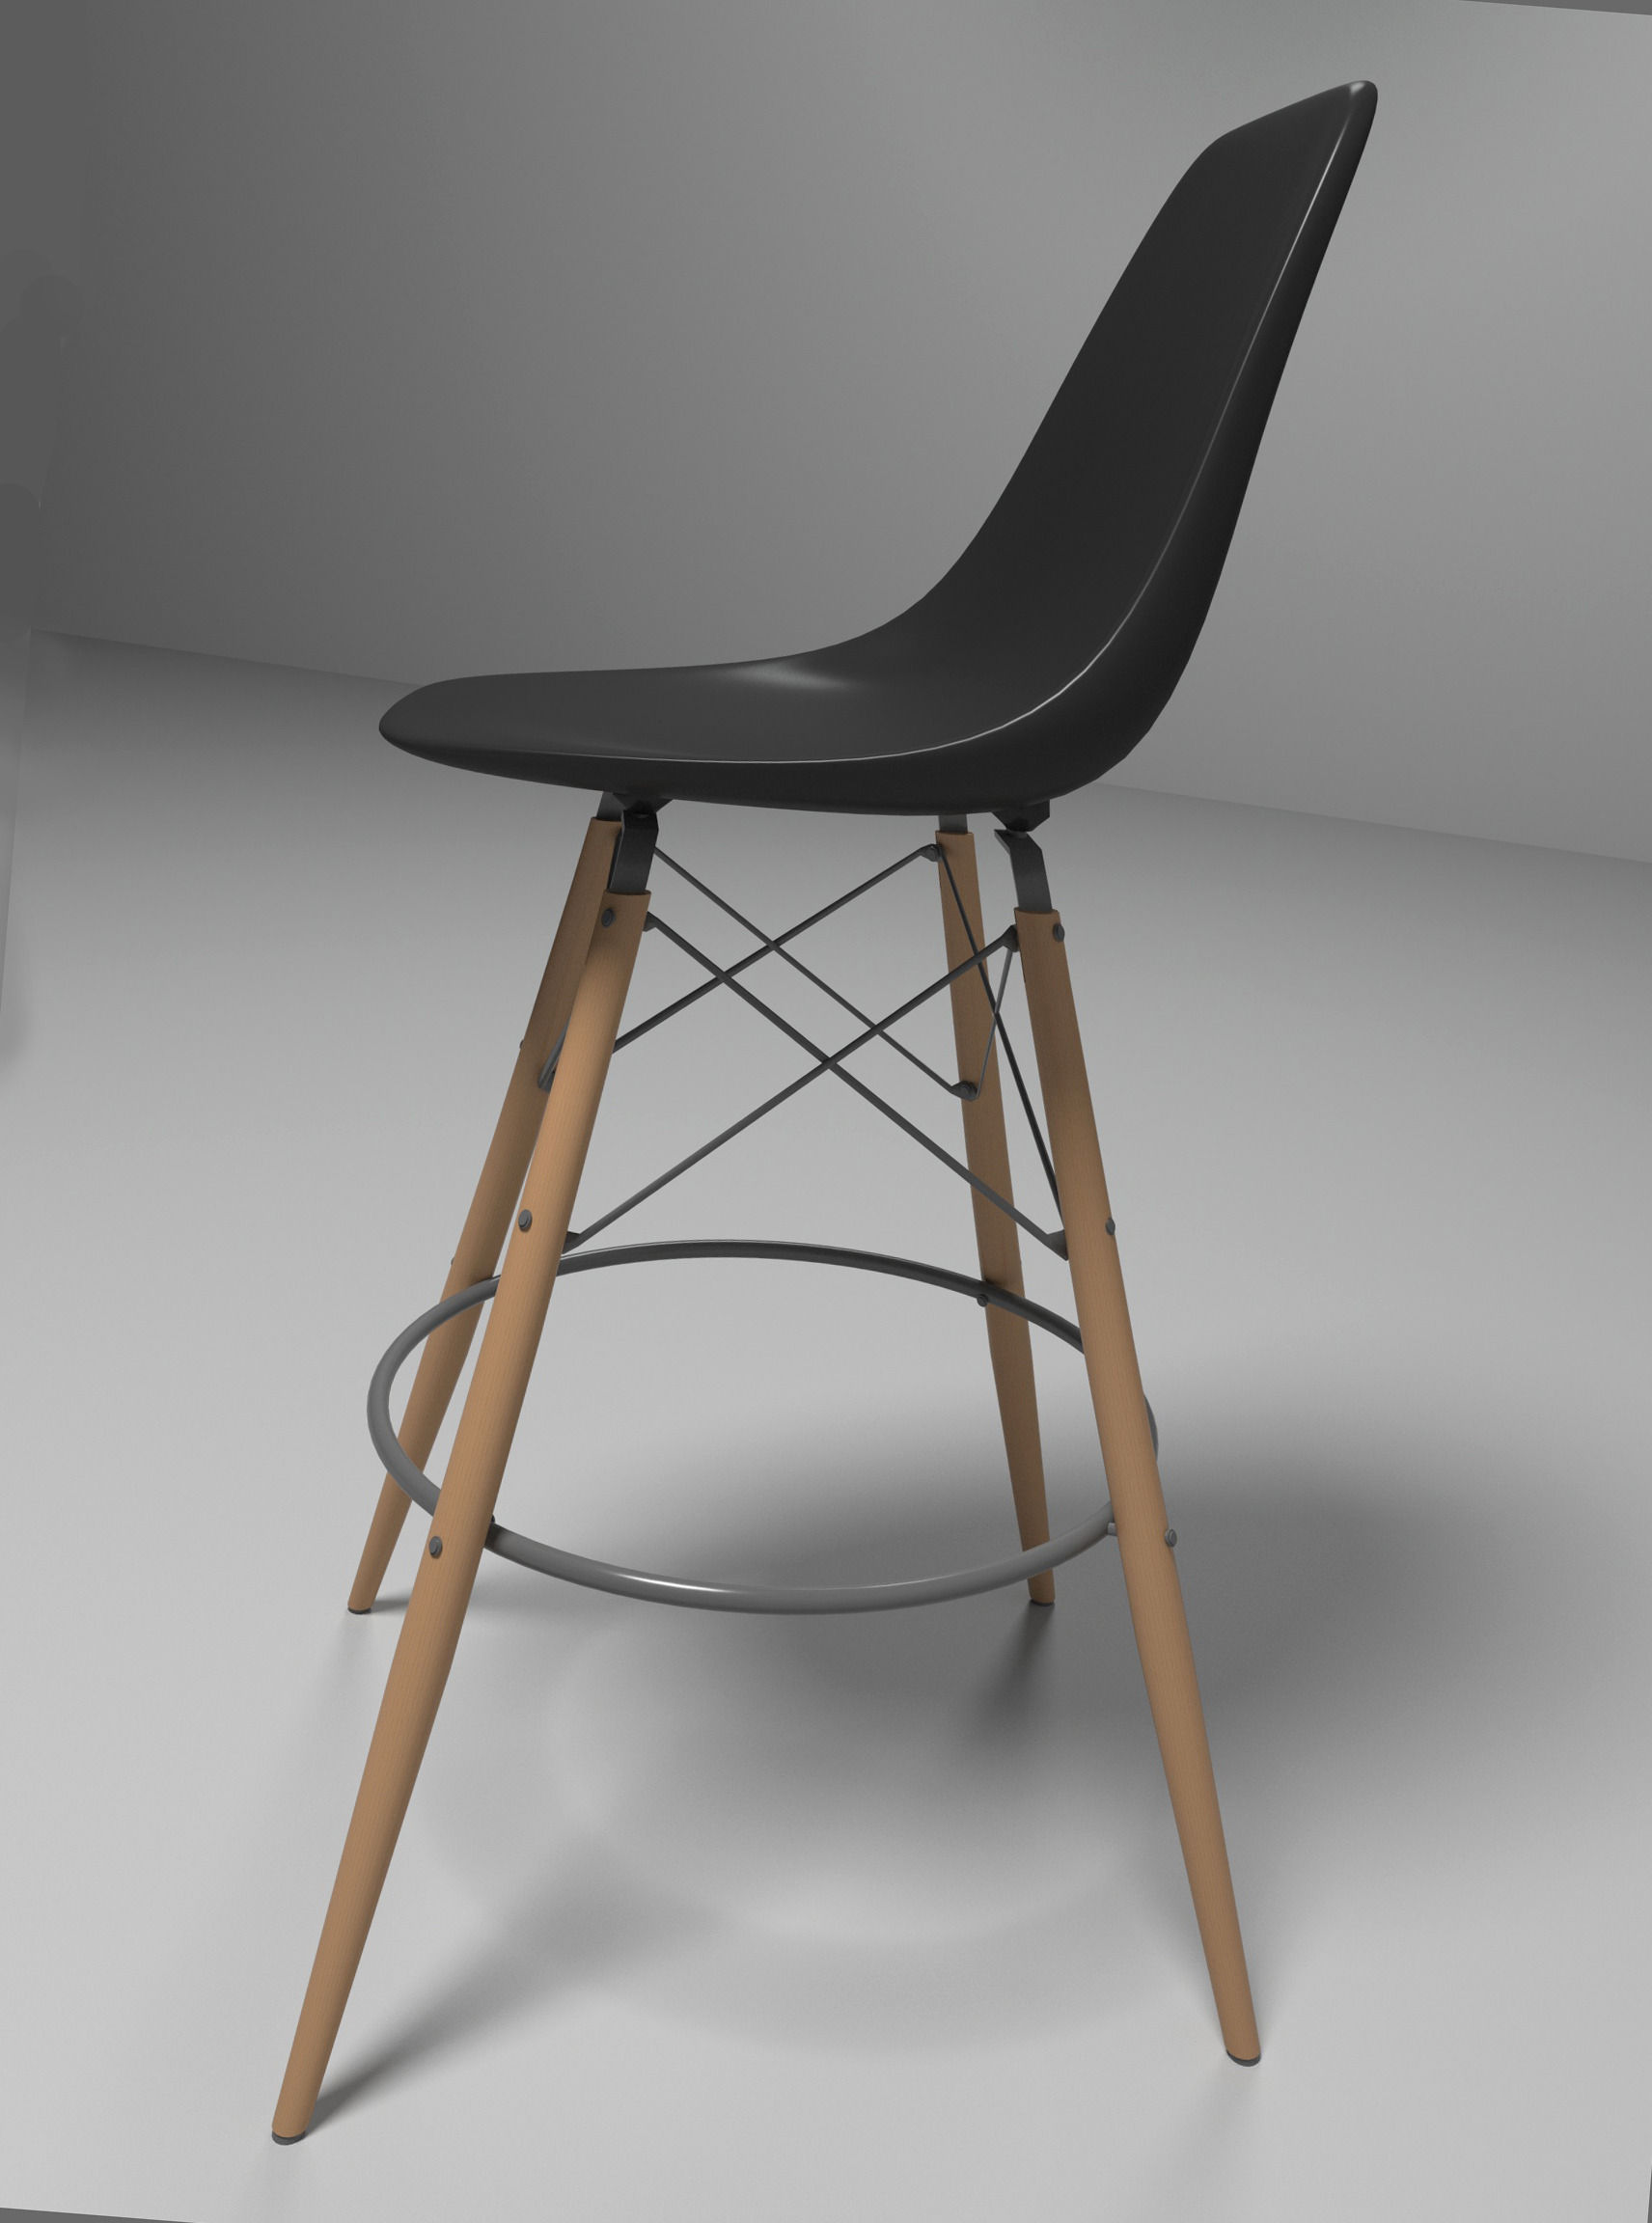 Charmant ... Eames Bar Chair 3d Model Max Obj Mtl 3ds Fbx 3 ...